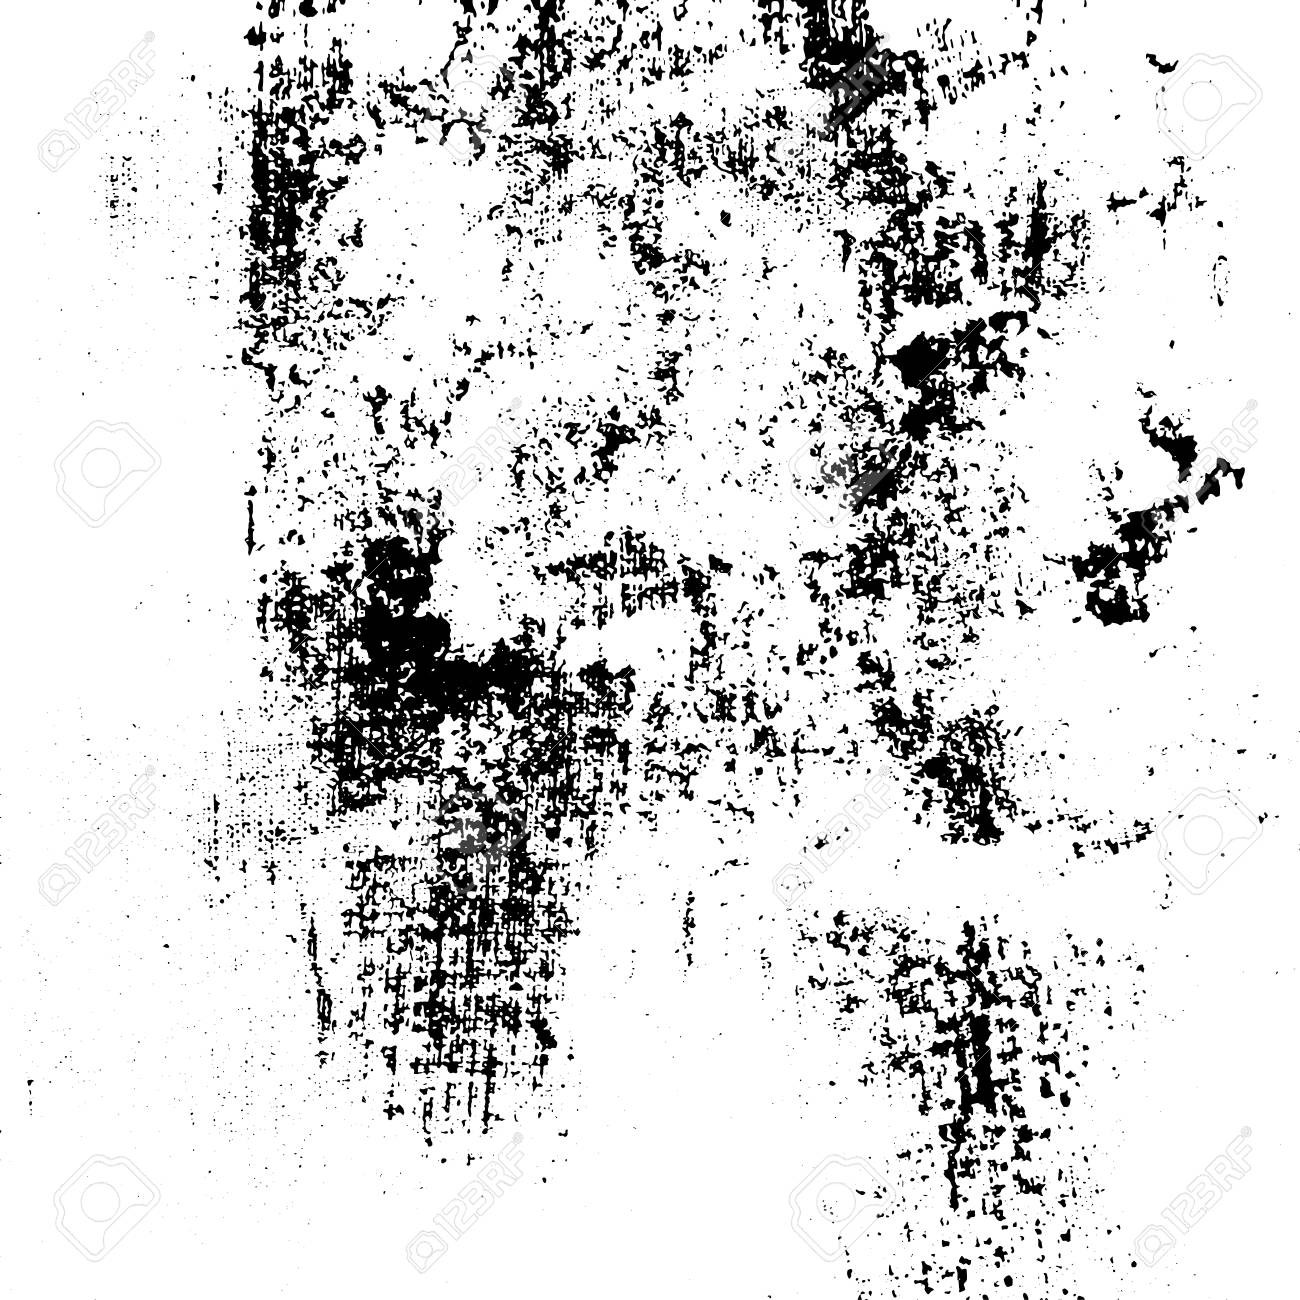 Grunge Urban Ink Texture Black And White On Paper Hand Brushed Abstract Vintage Print